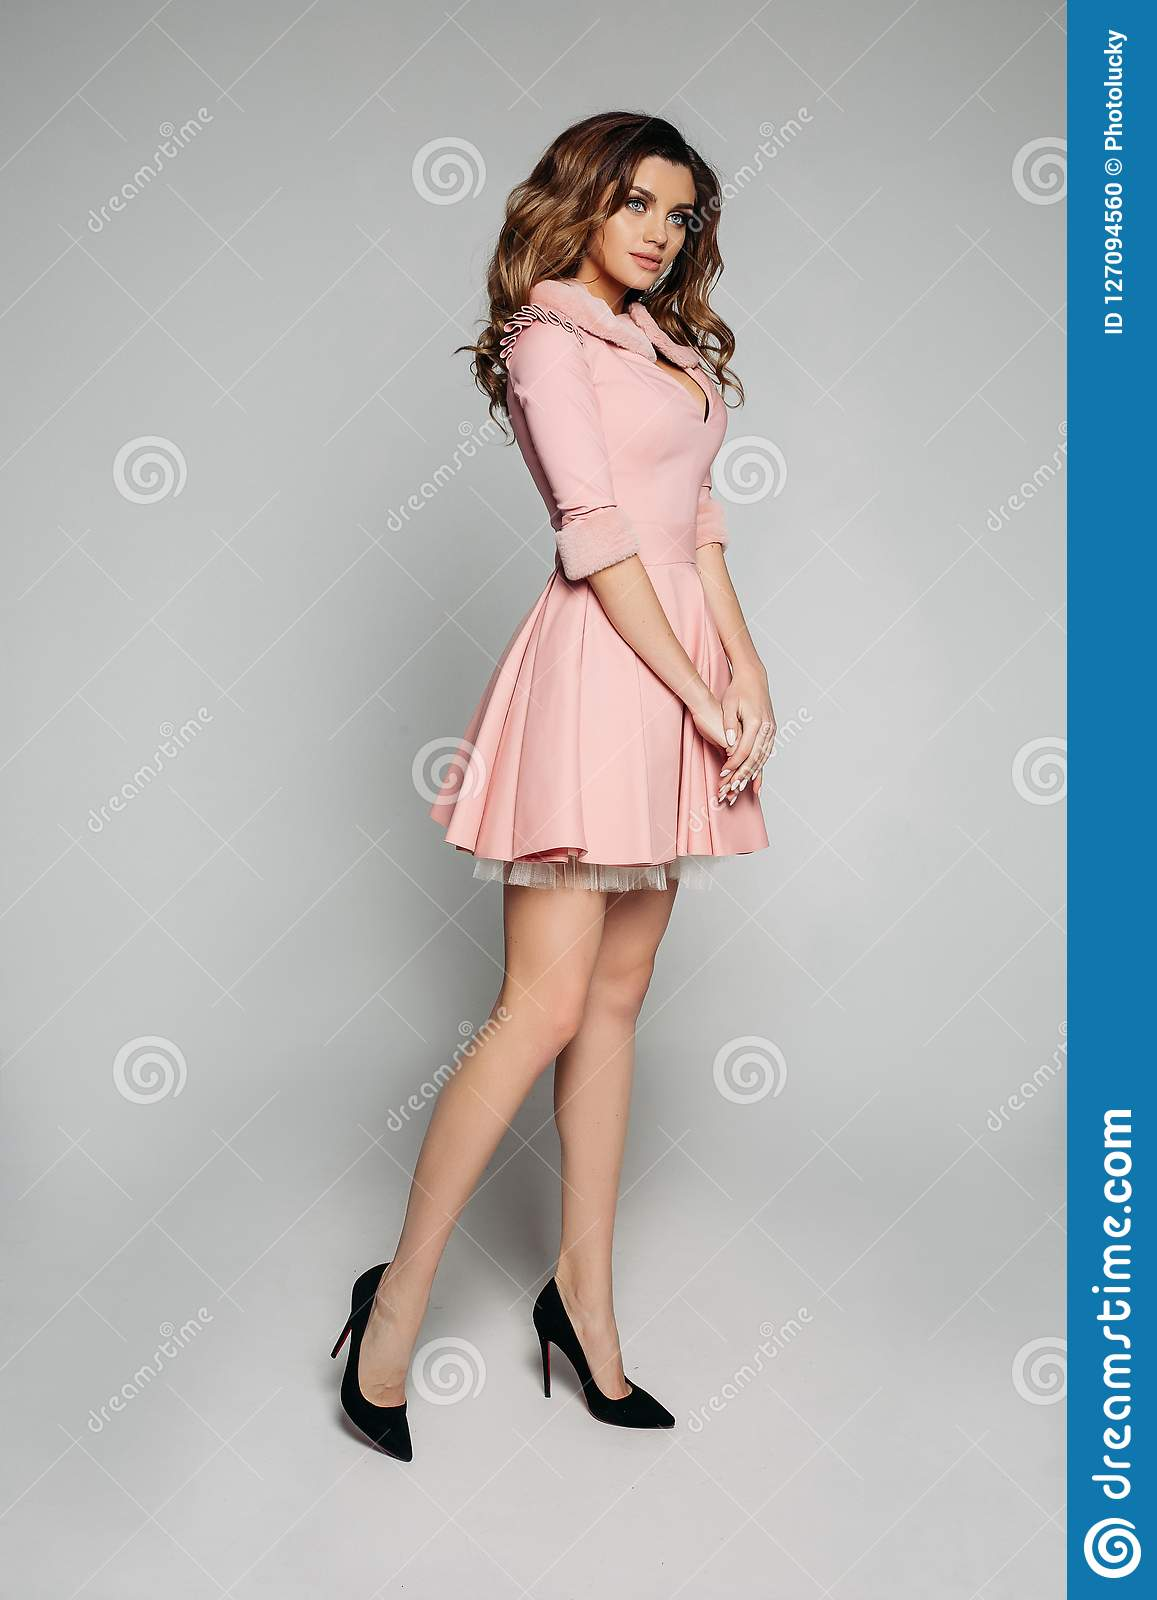 1a930c19aa9f Elegant Model In Pink Dress And Black Heels. Stock Photo - Image of ...